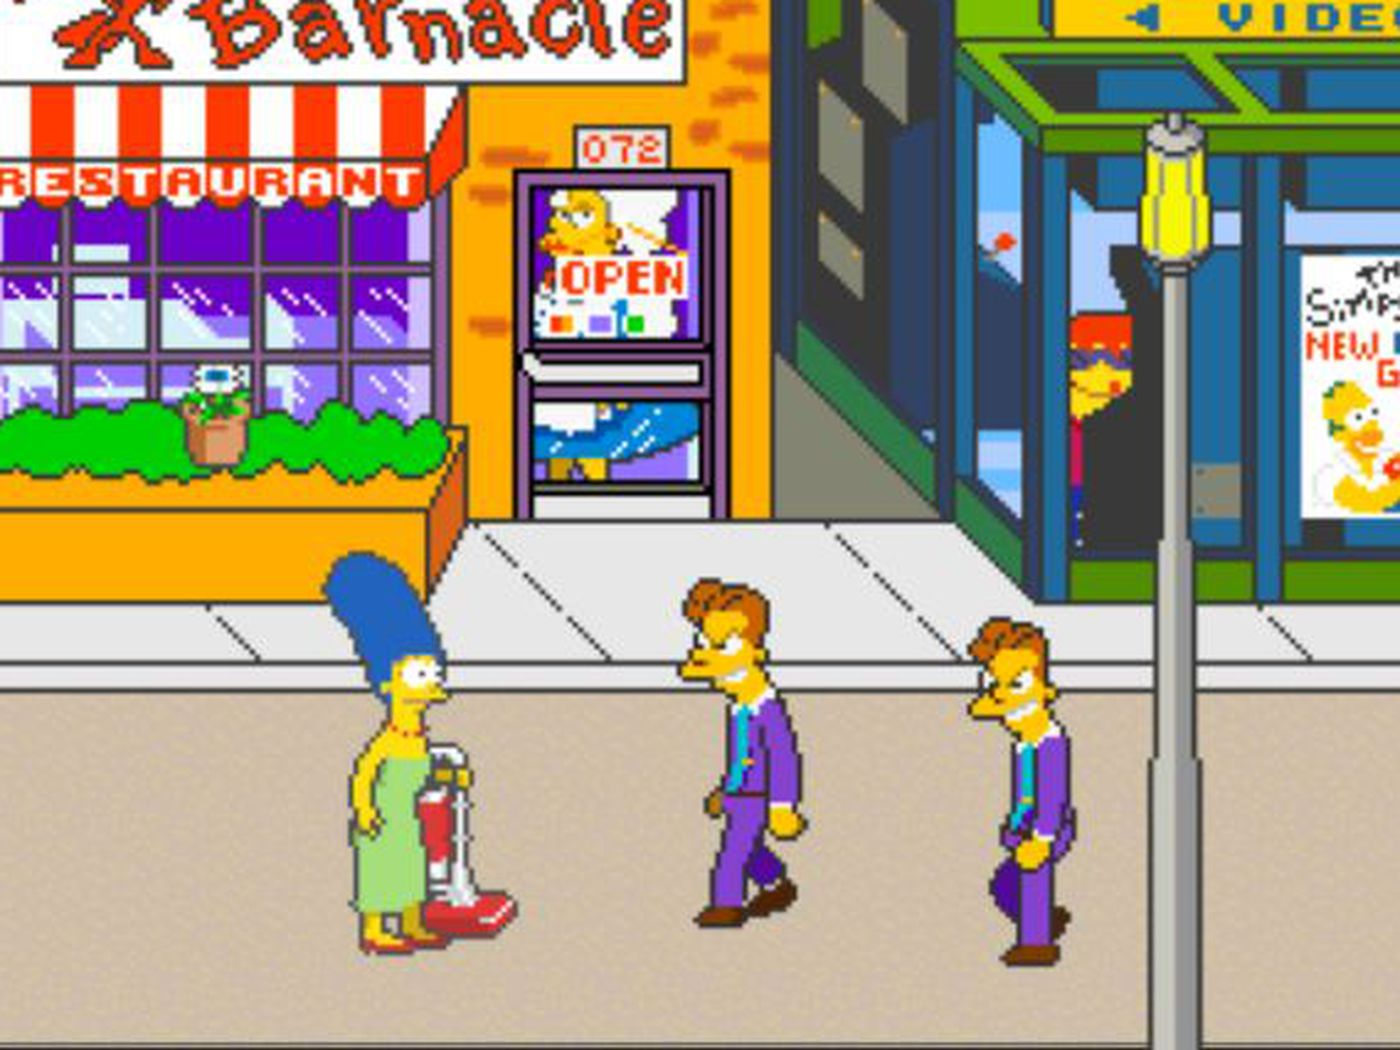 The Simpsons Arcade Game' was the best game ever based on a